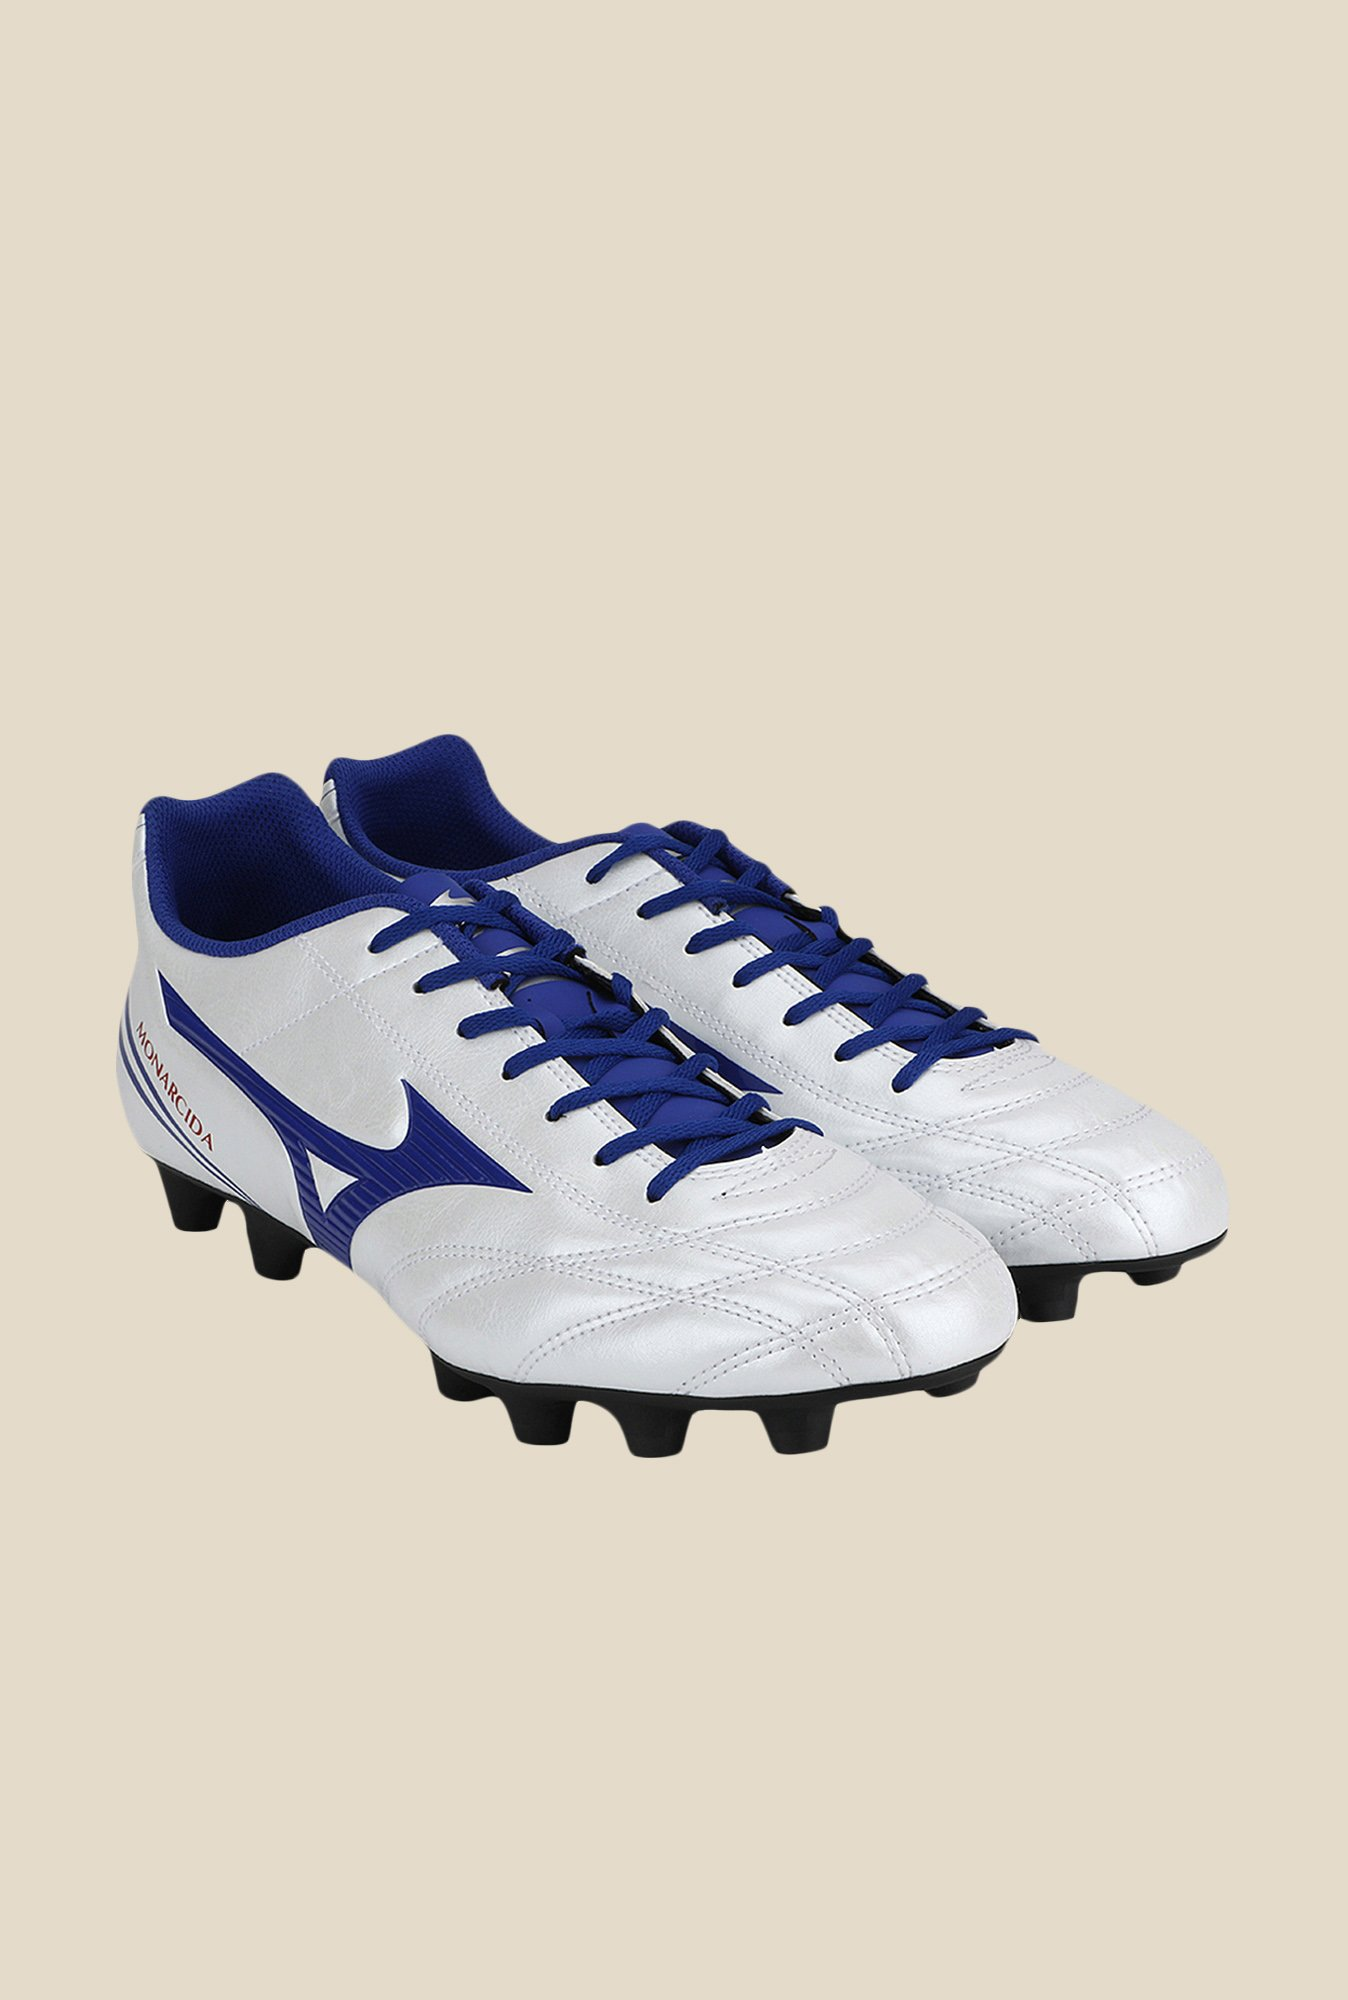 Mizuno Monarcida FS MD (Wide) White & Blue Football Shoes